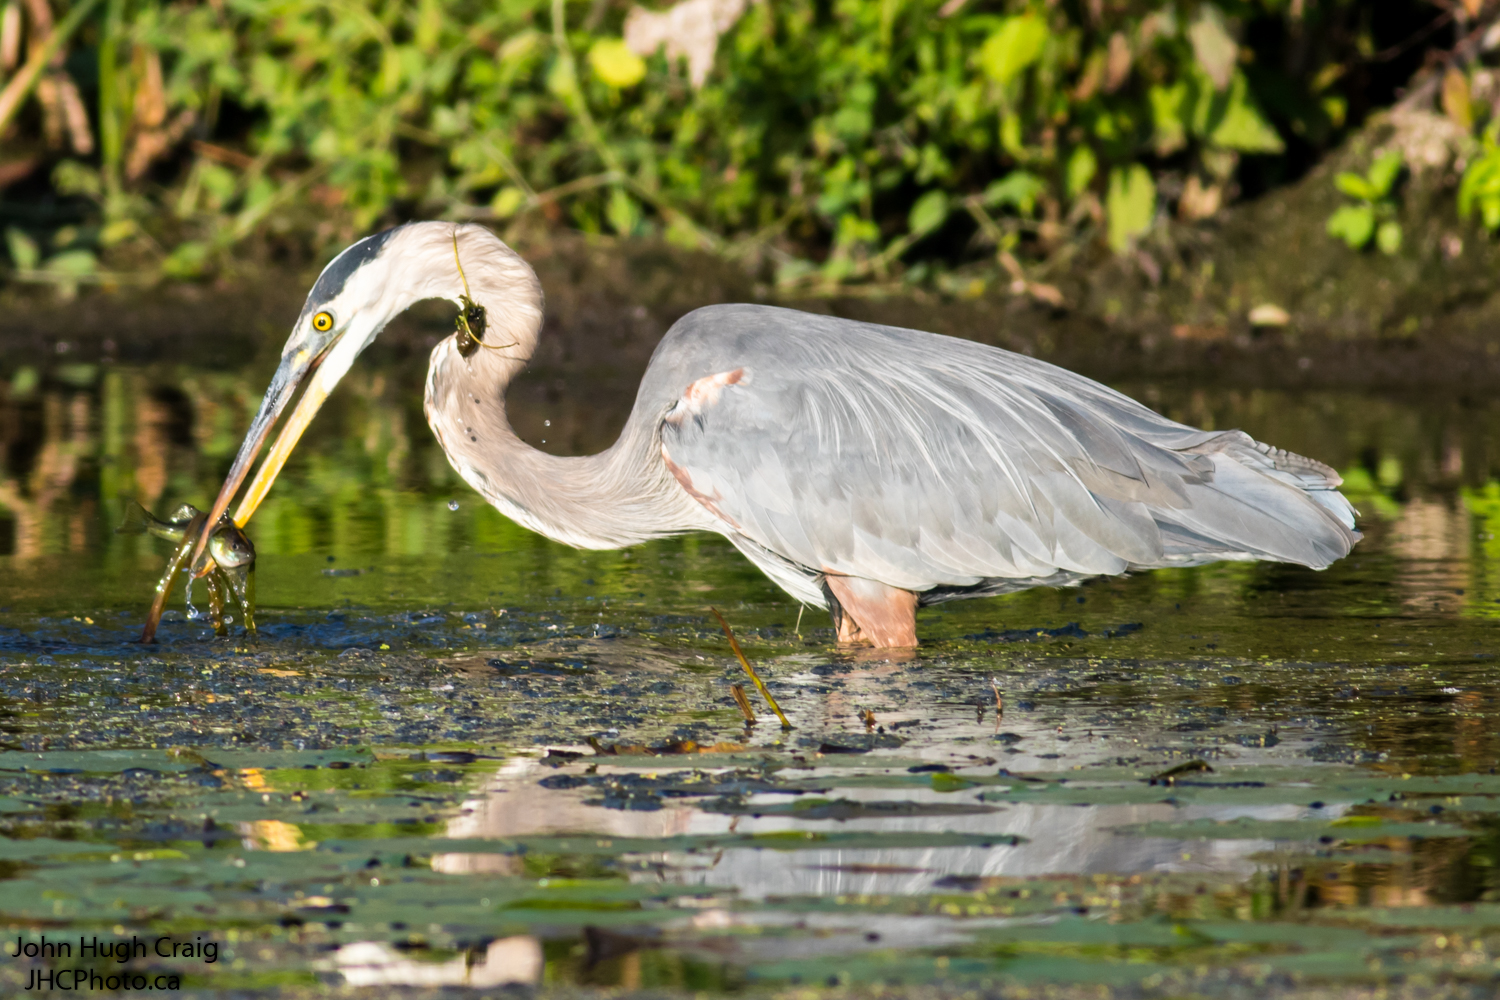 Heron's lunch